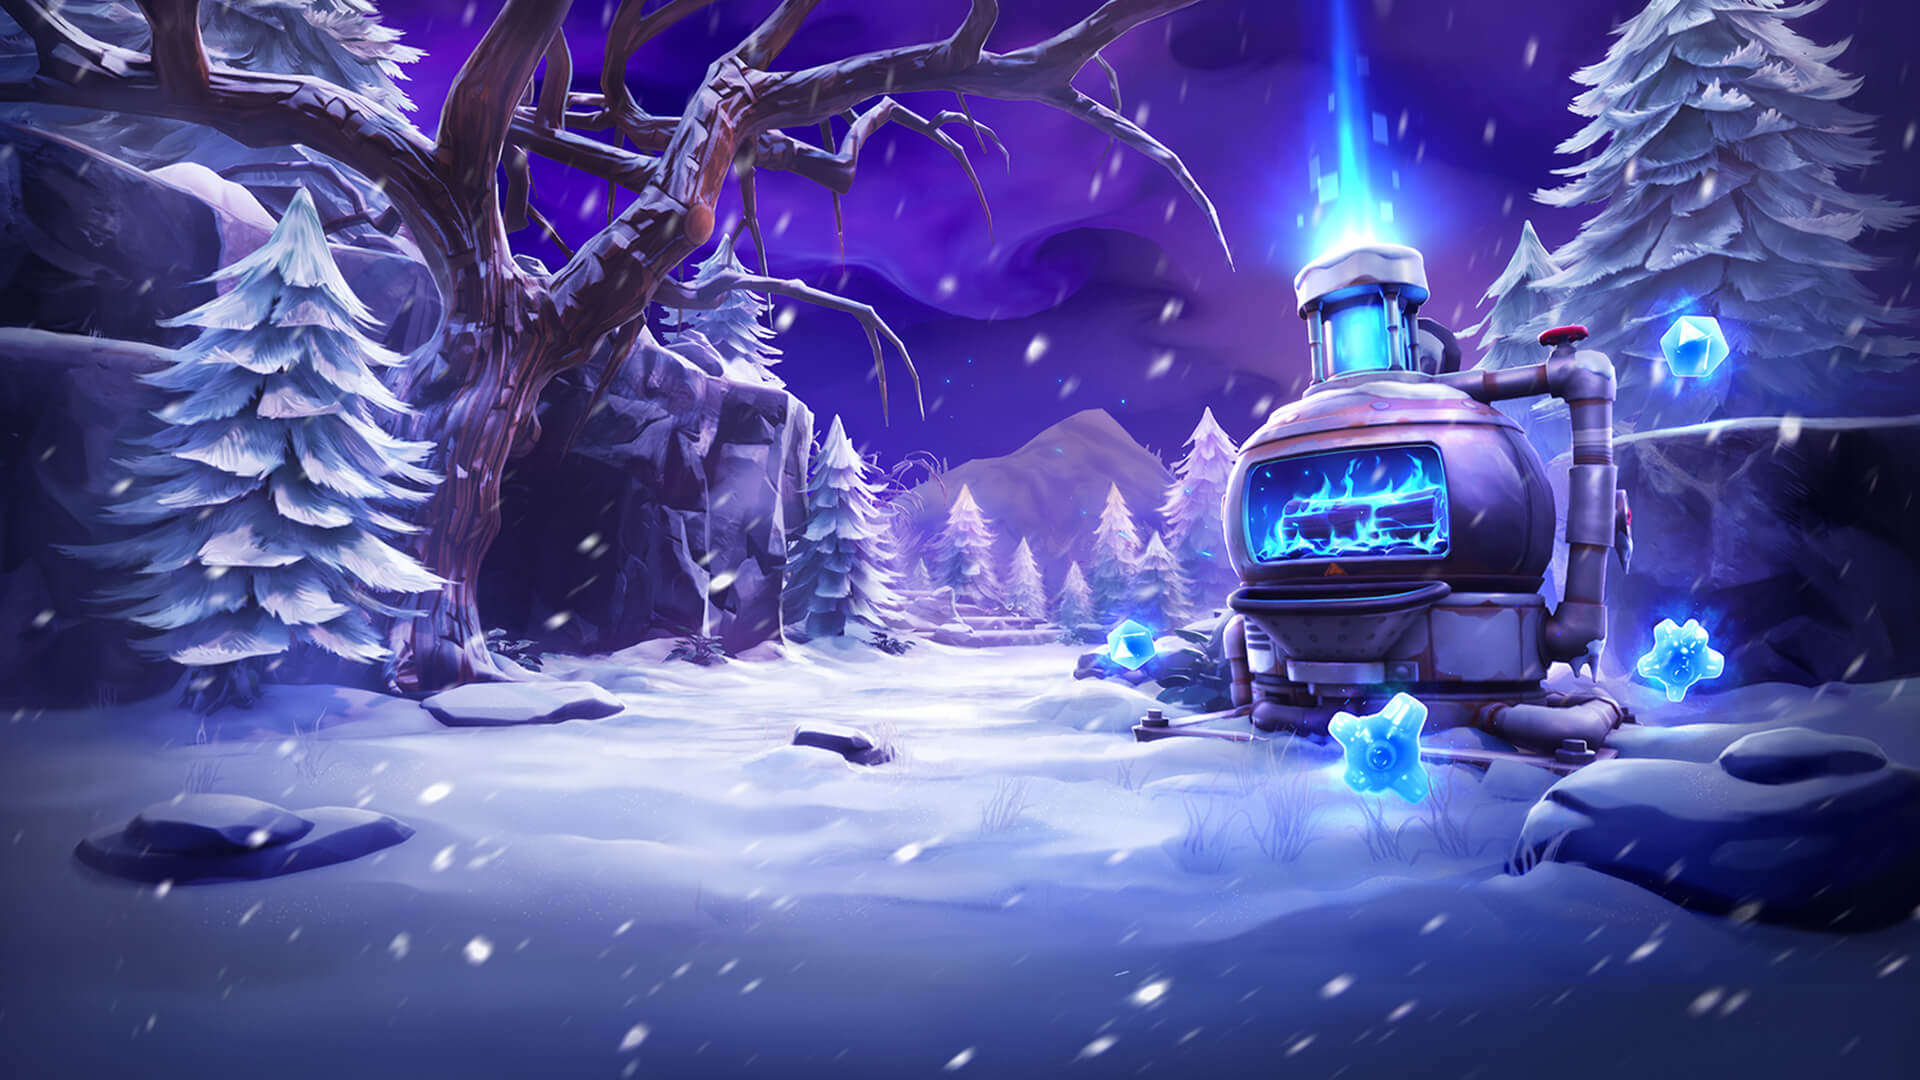 StW07_Subgameselect_Frostnite_Environment.jpg